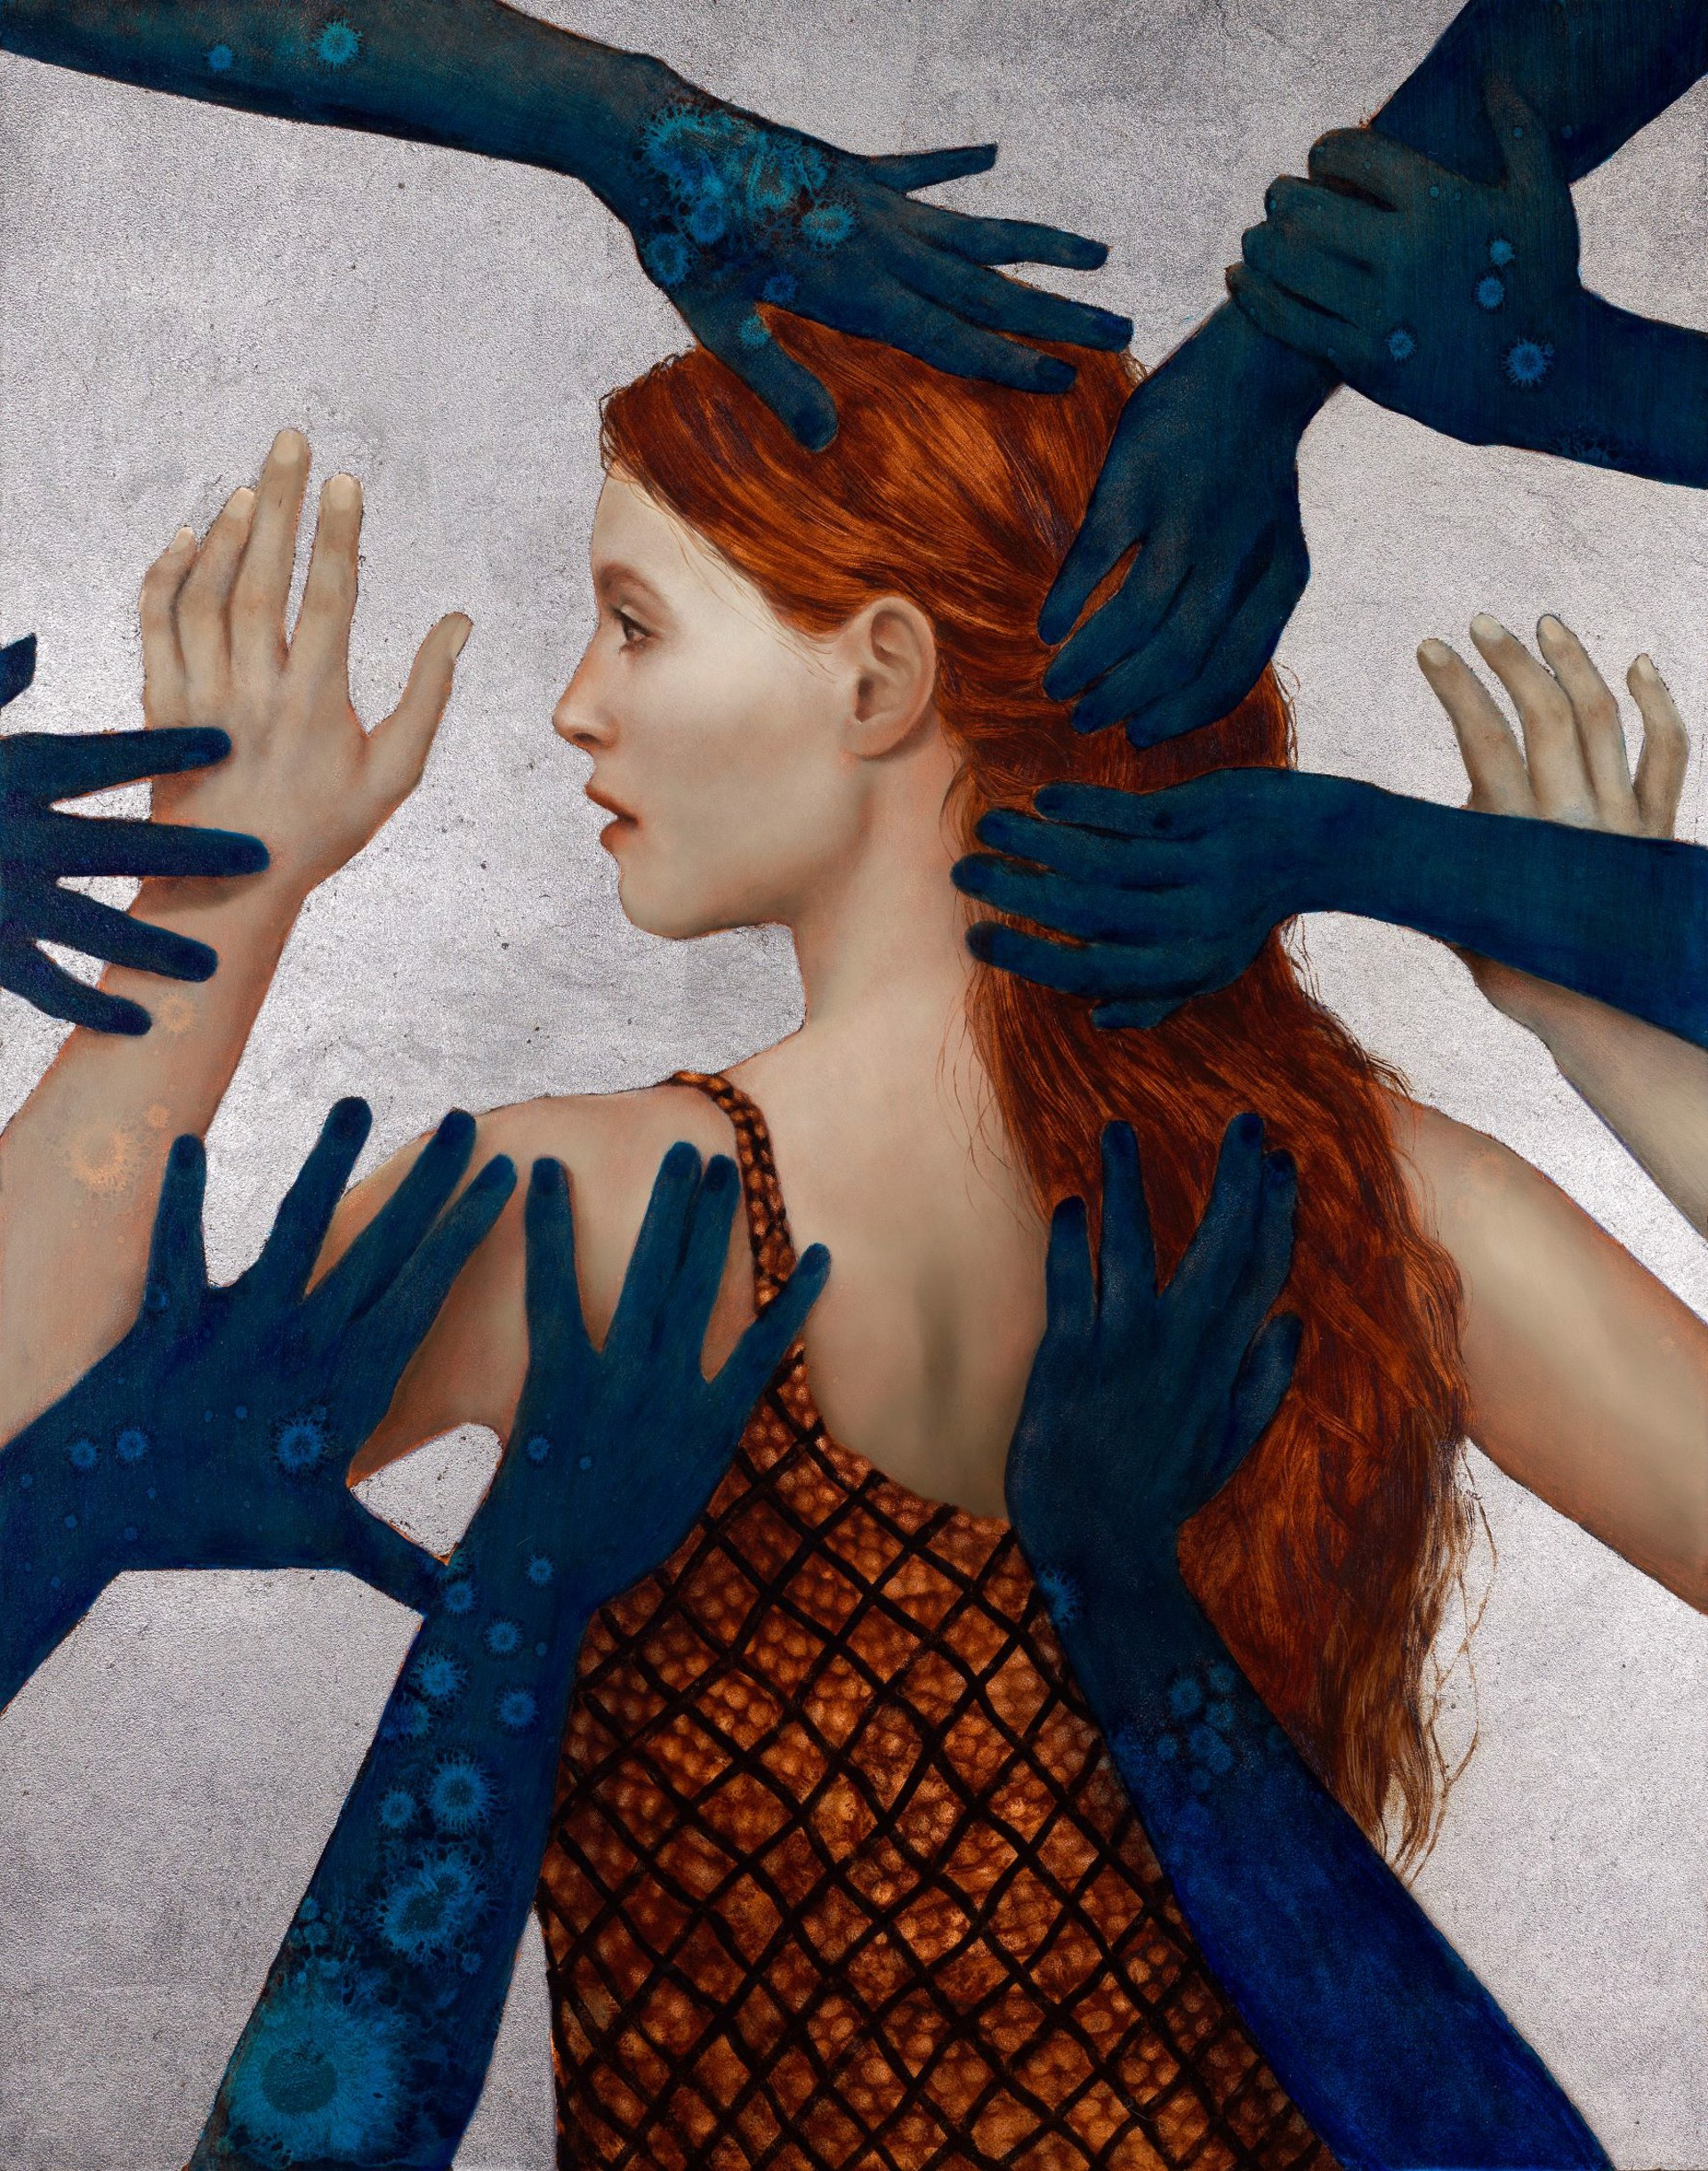 Silence is Complicity by Genevieve May